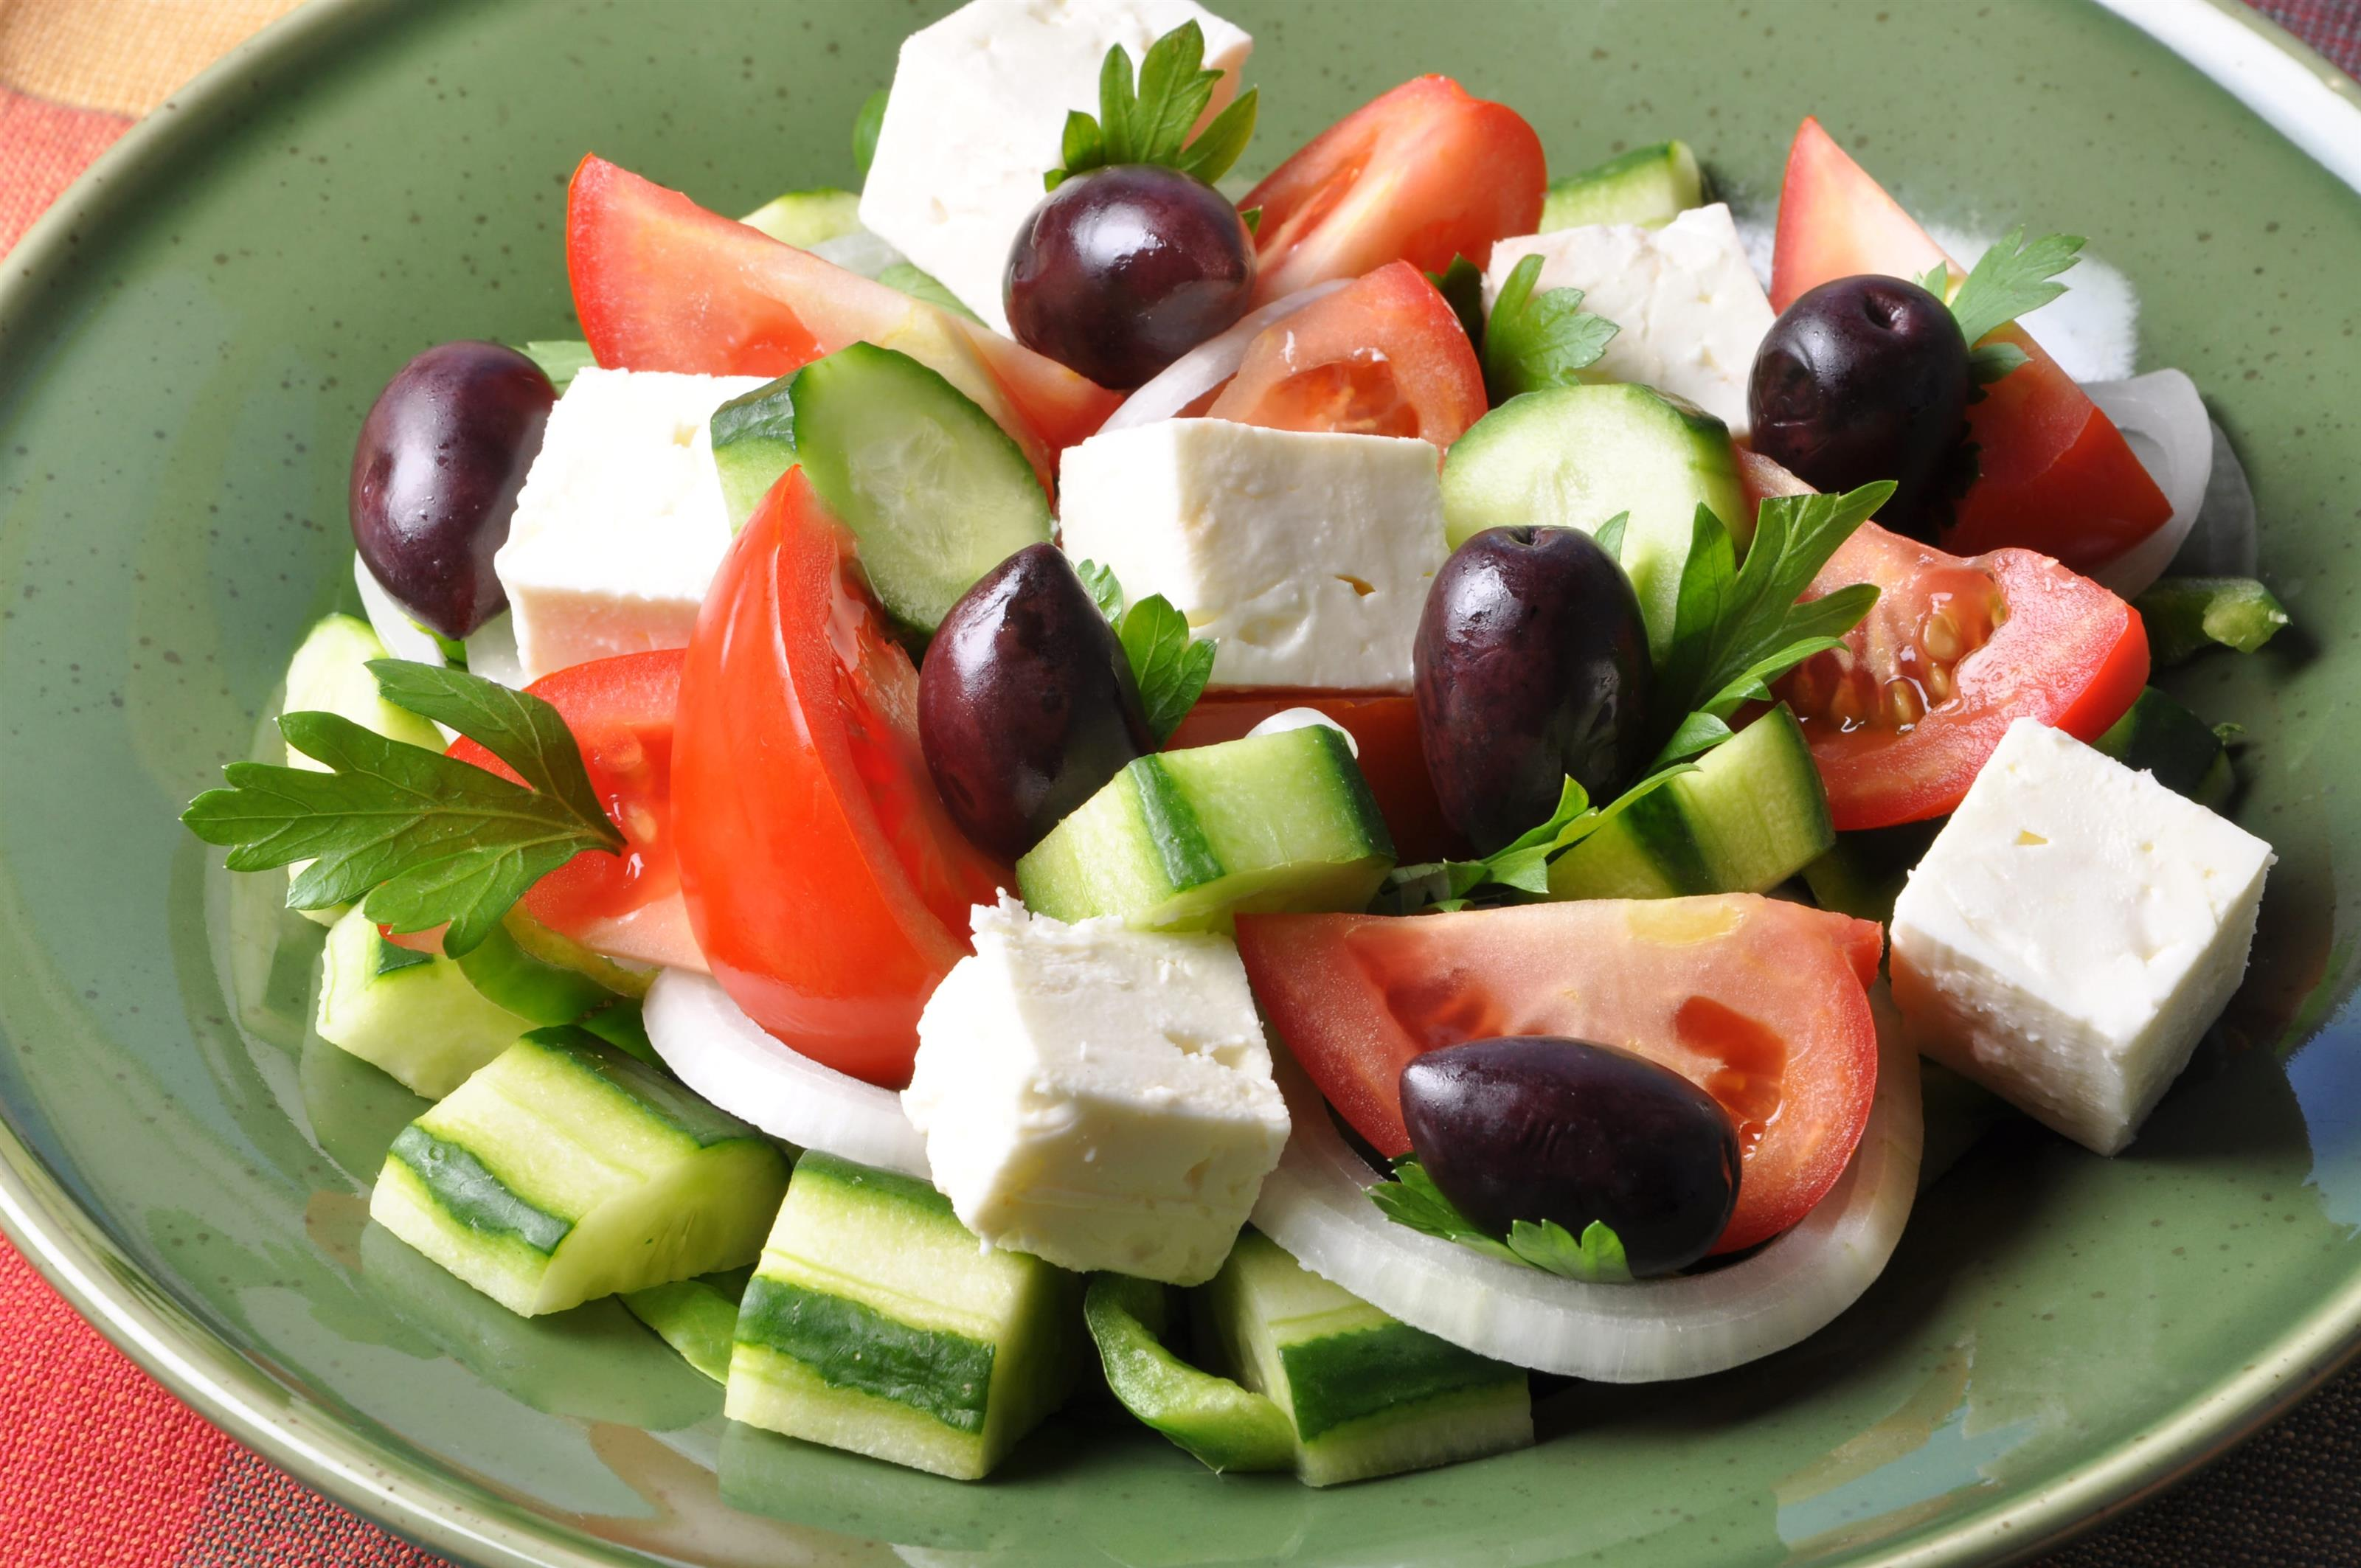 antipasto salad with mozzarella, cucumber, olives, tomatoes, and onions